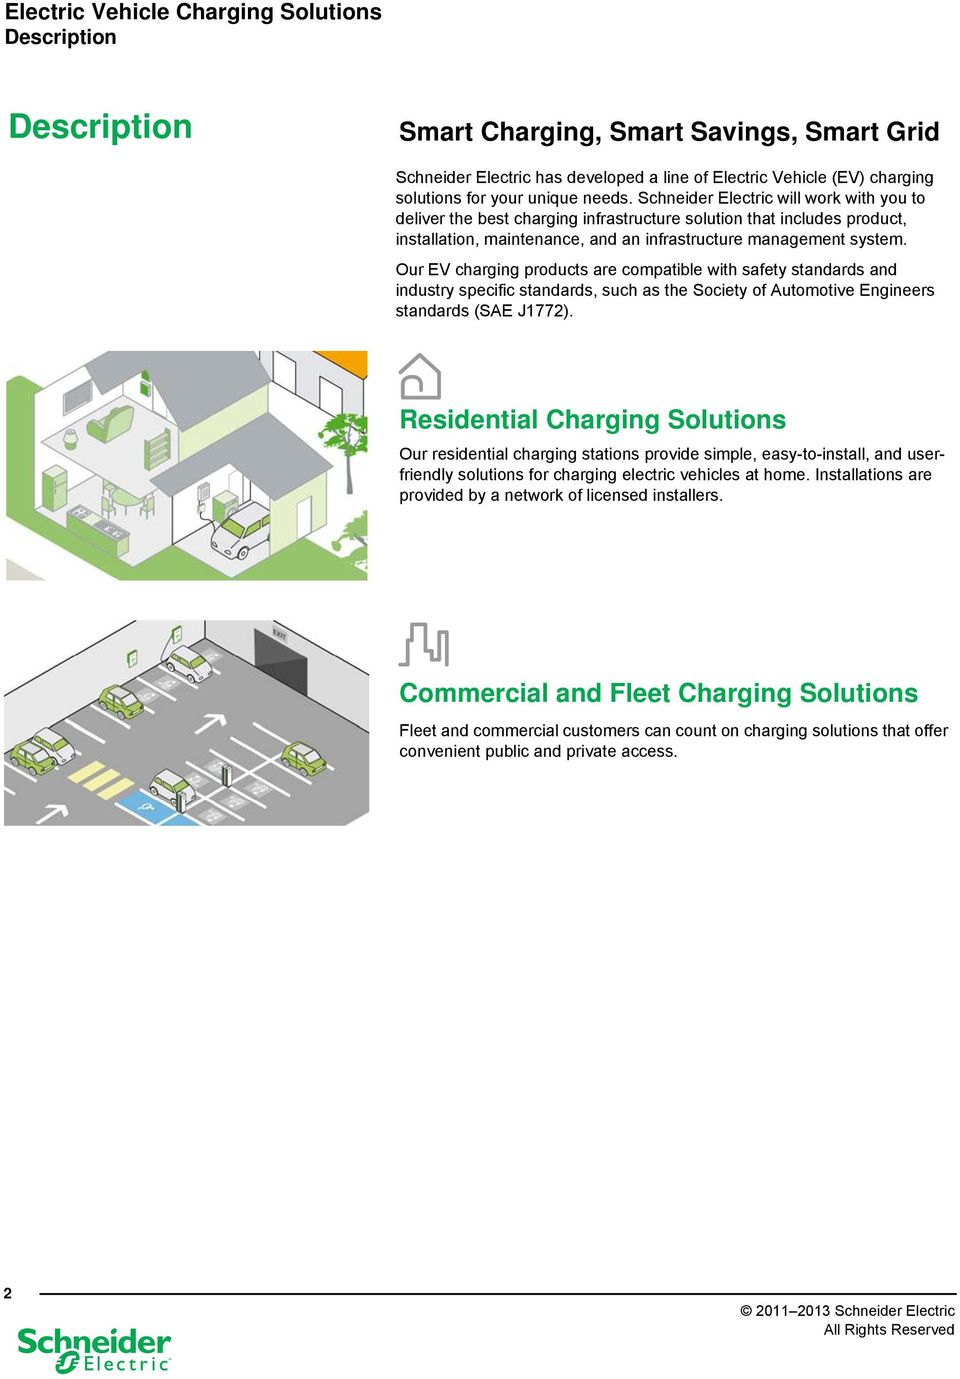 Electric Vehicle Charging Solutions Powering The Future Of Ev Stations Wiring Diagram Our Products Are Compatible With Safety Standards And Industry Specific Such As